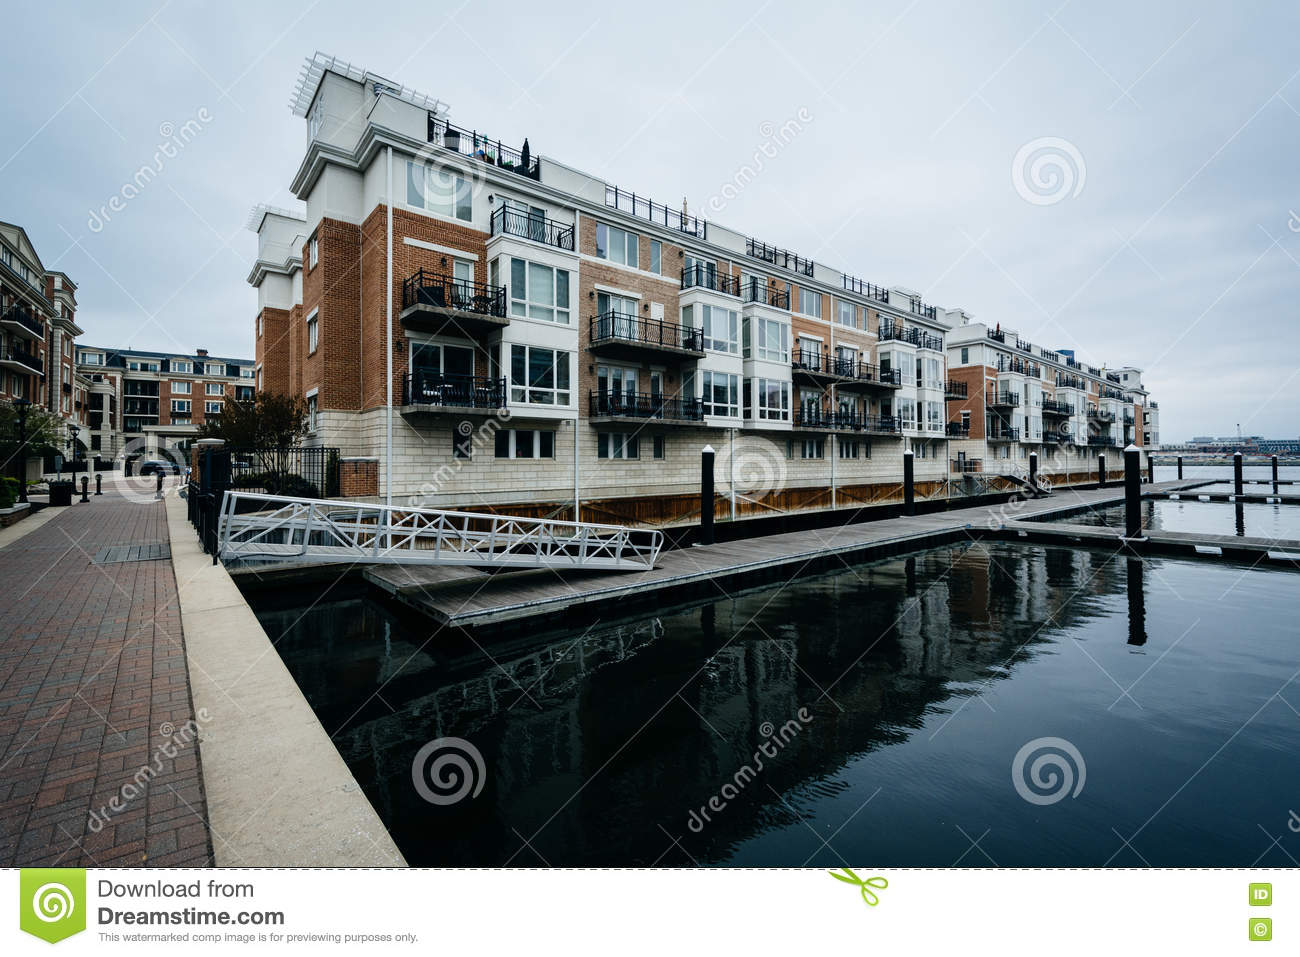 Wonderful Waterfront Apartment Buildings At The Inner Harbor, In Baltimore